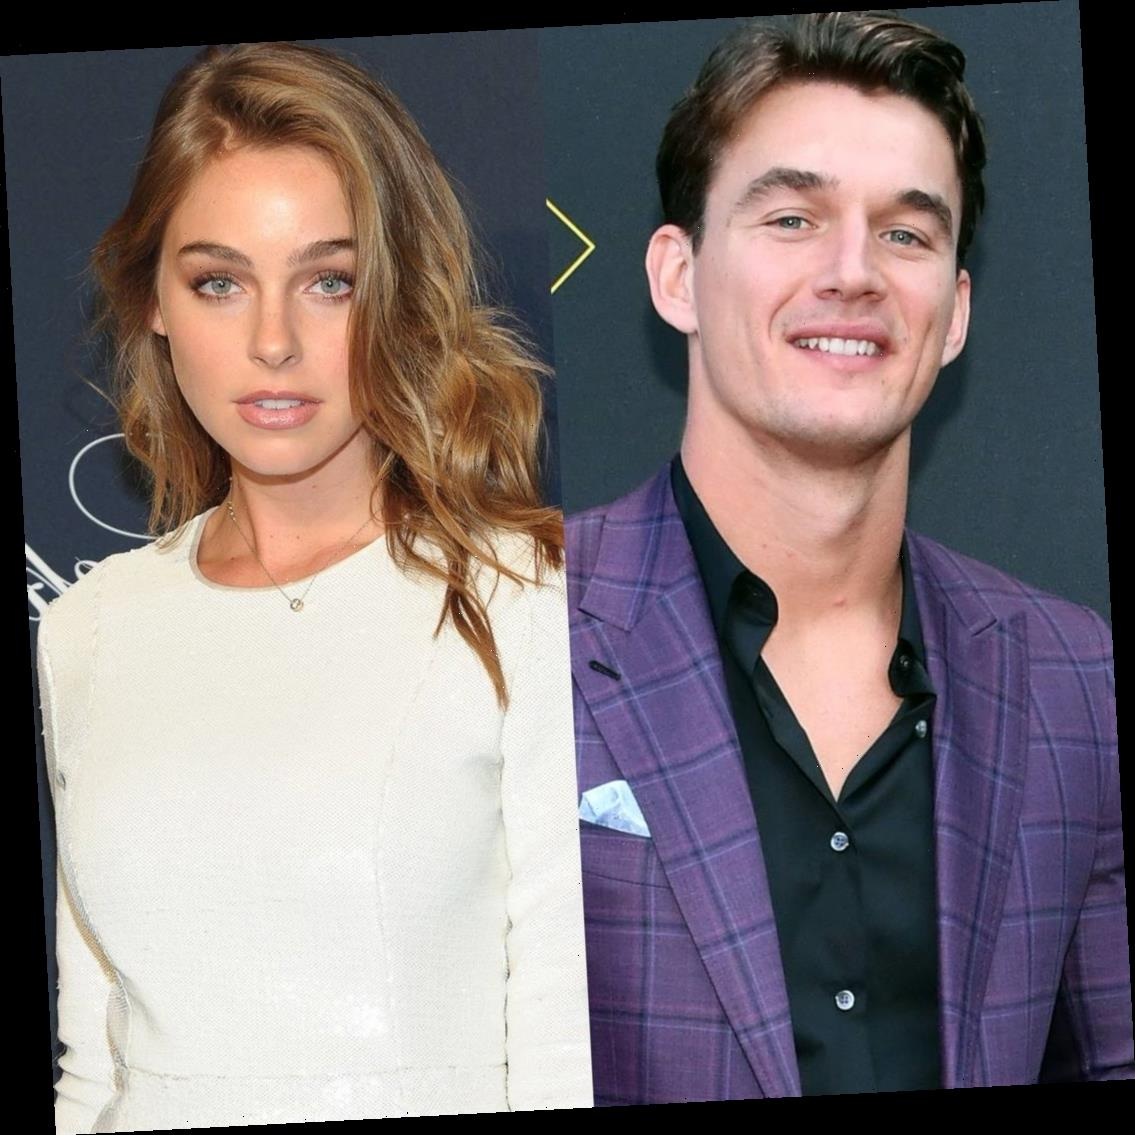 Tyler Cameron Shuts Down Hannah Brown Rumors as He Spends Time With Model Elizabeth Turner